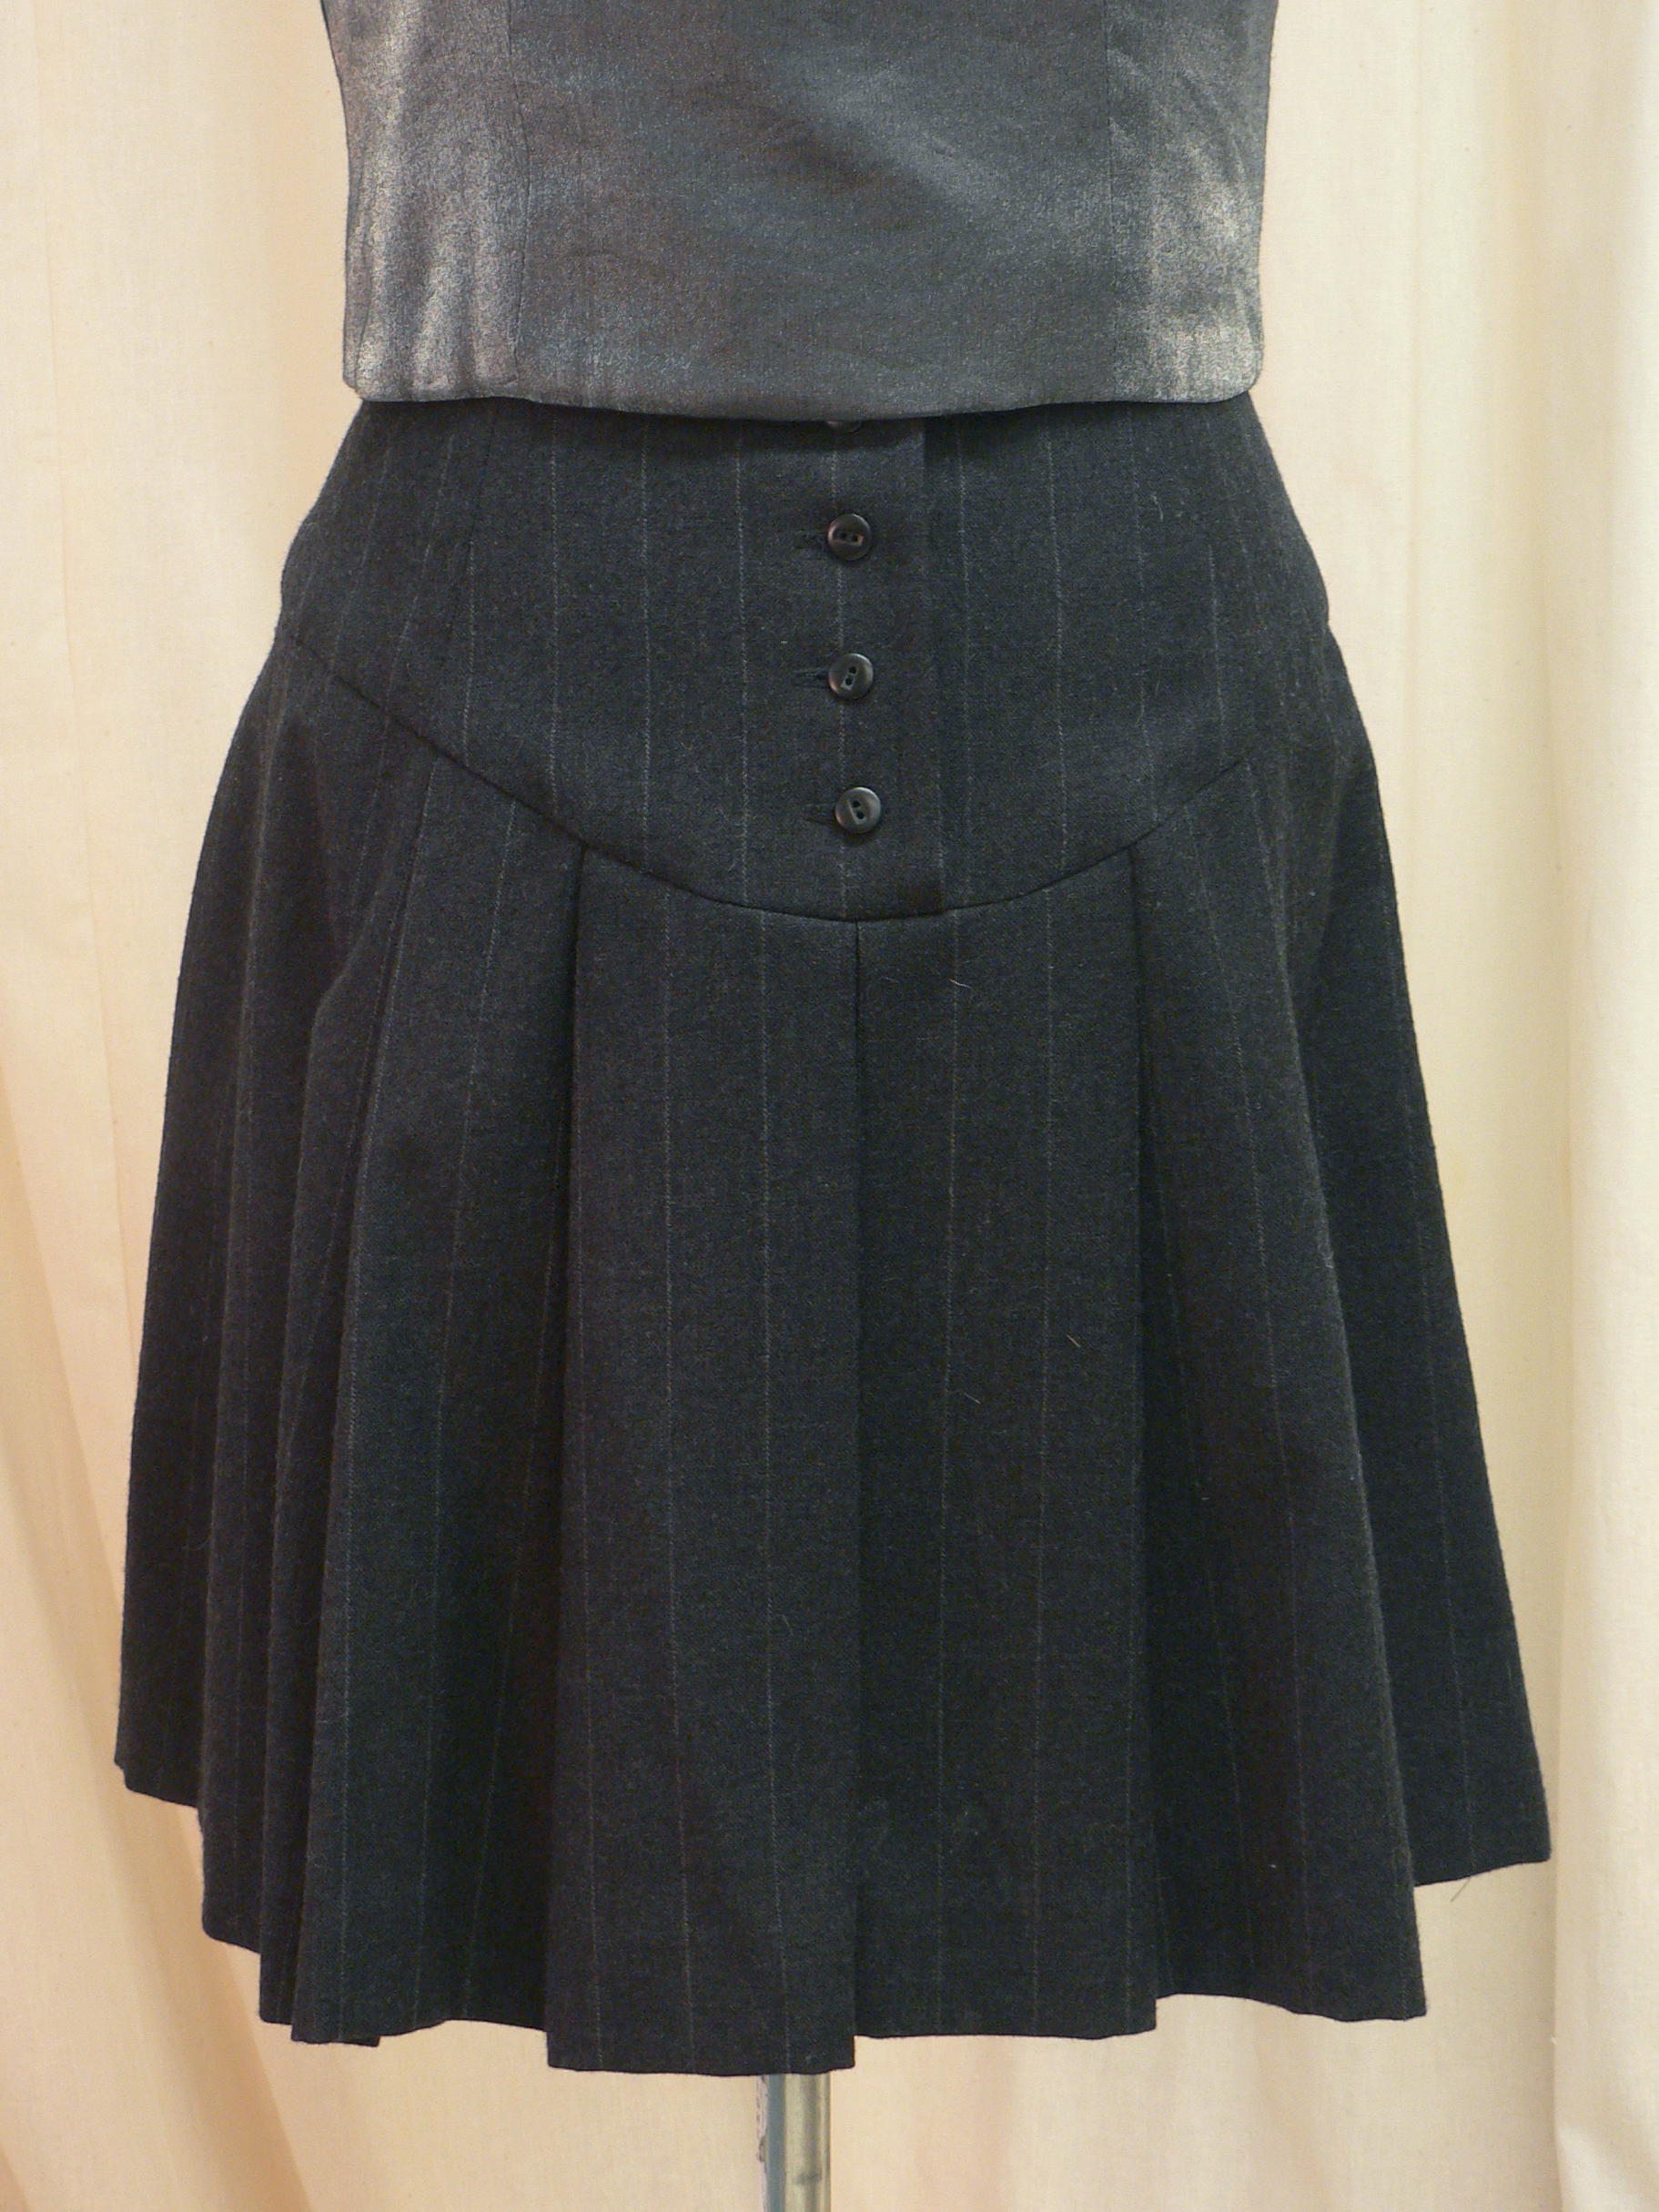 ensemble14_skirt_back_detail.jpg